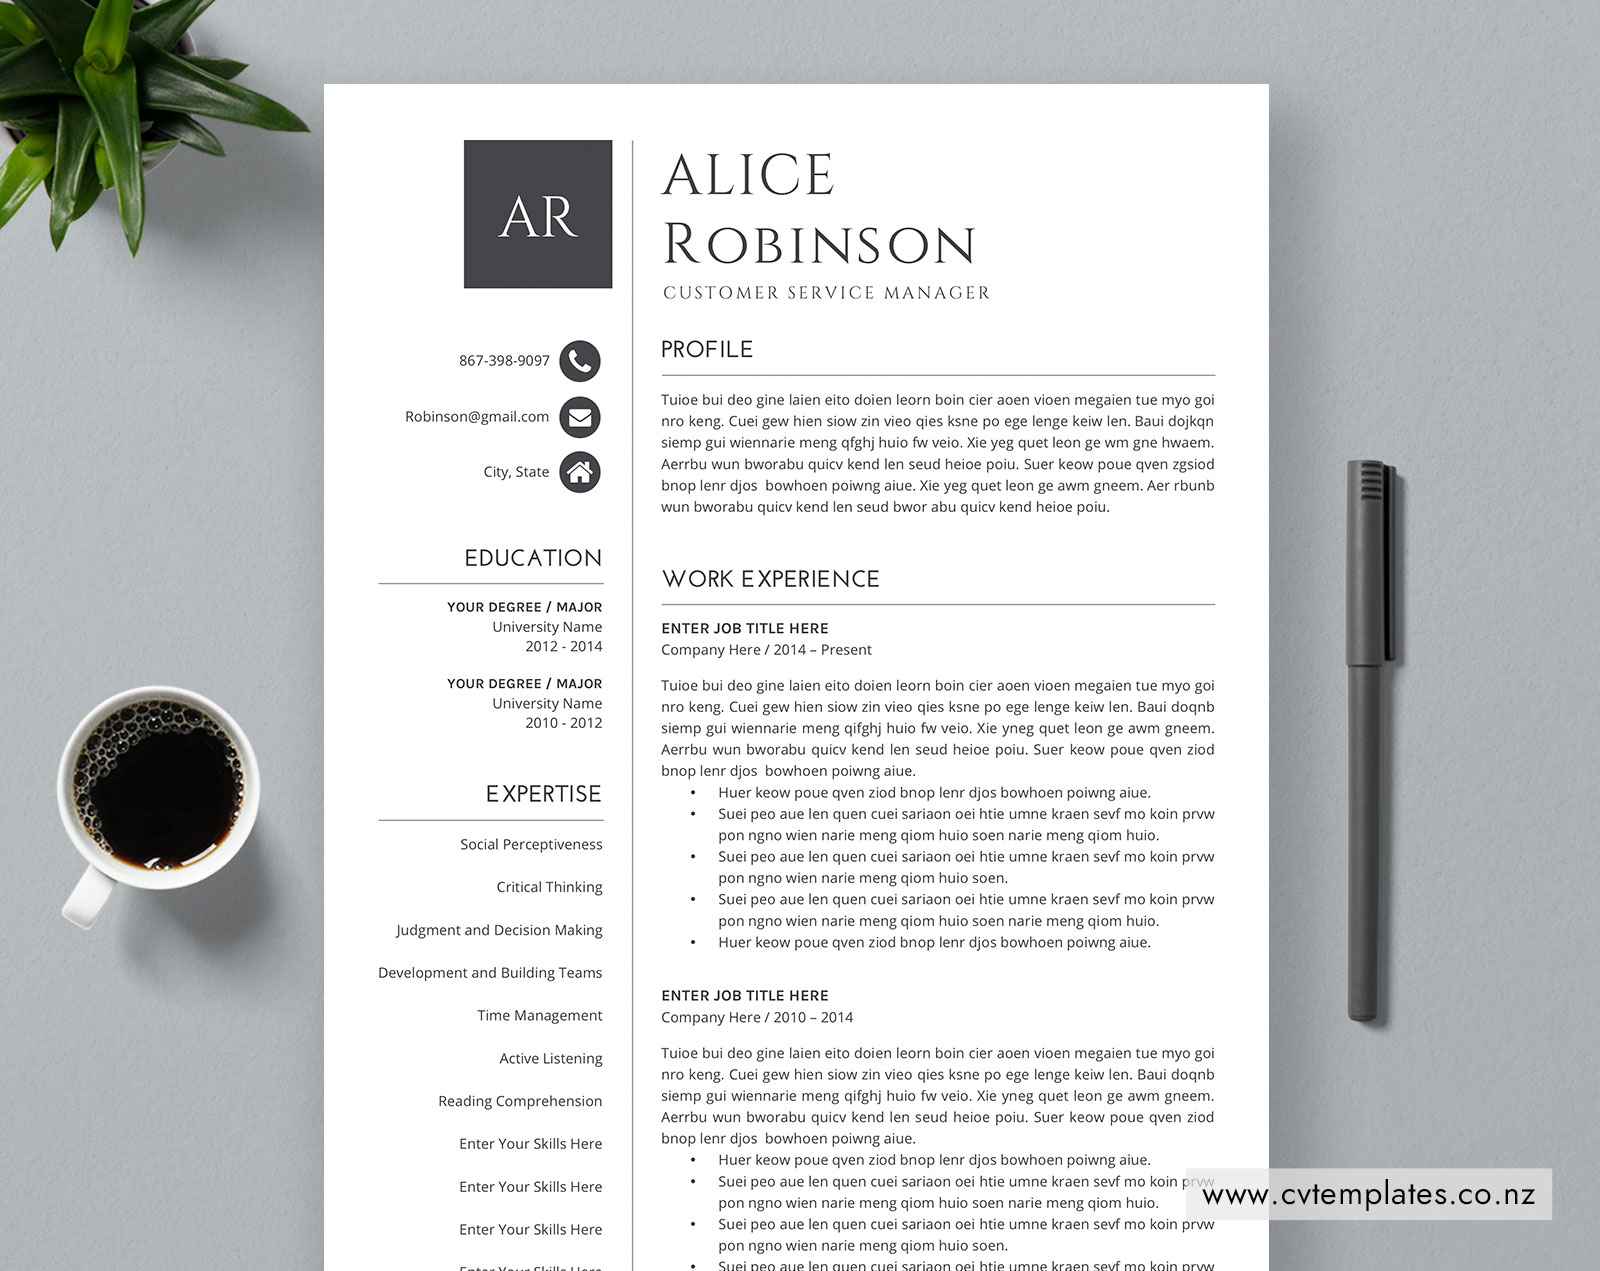 CV Template for MS Word, Curriculum Vitae, Simple and ...